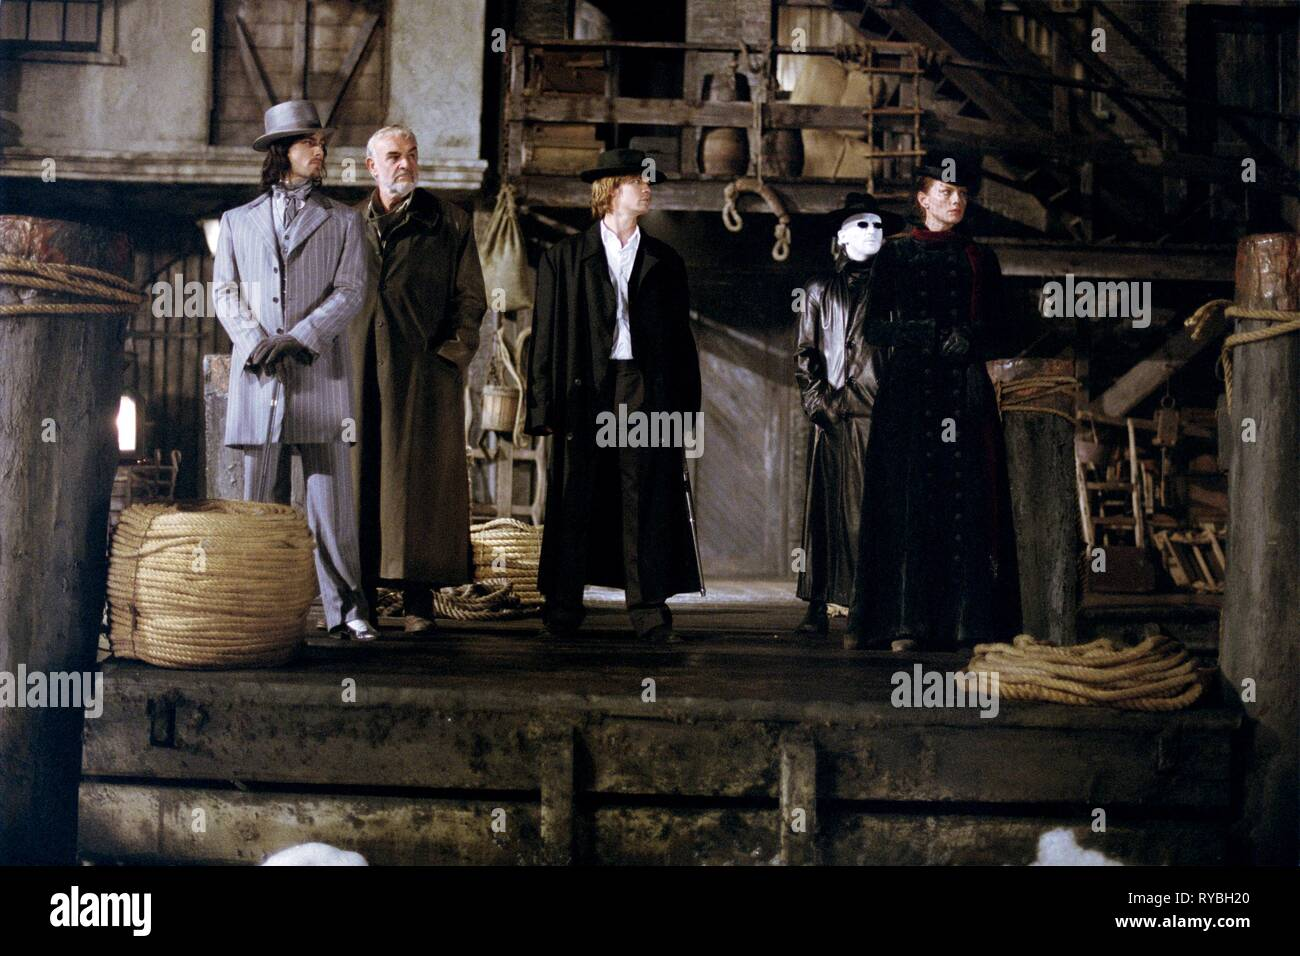 STUART TOWNSEND, SEAN CONNERY, SHANE WEST, TONY CURRAN,PETA WILSON, THE LEAGUE OF EXTRAORDINARY GENTLEMEN, 2003 Stock Photo